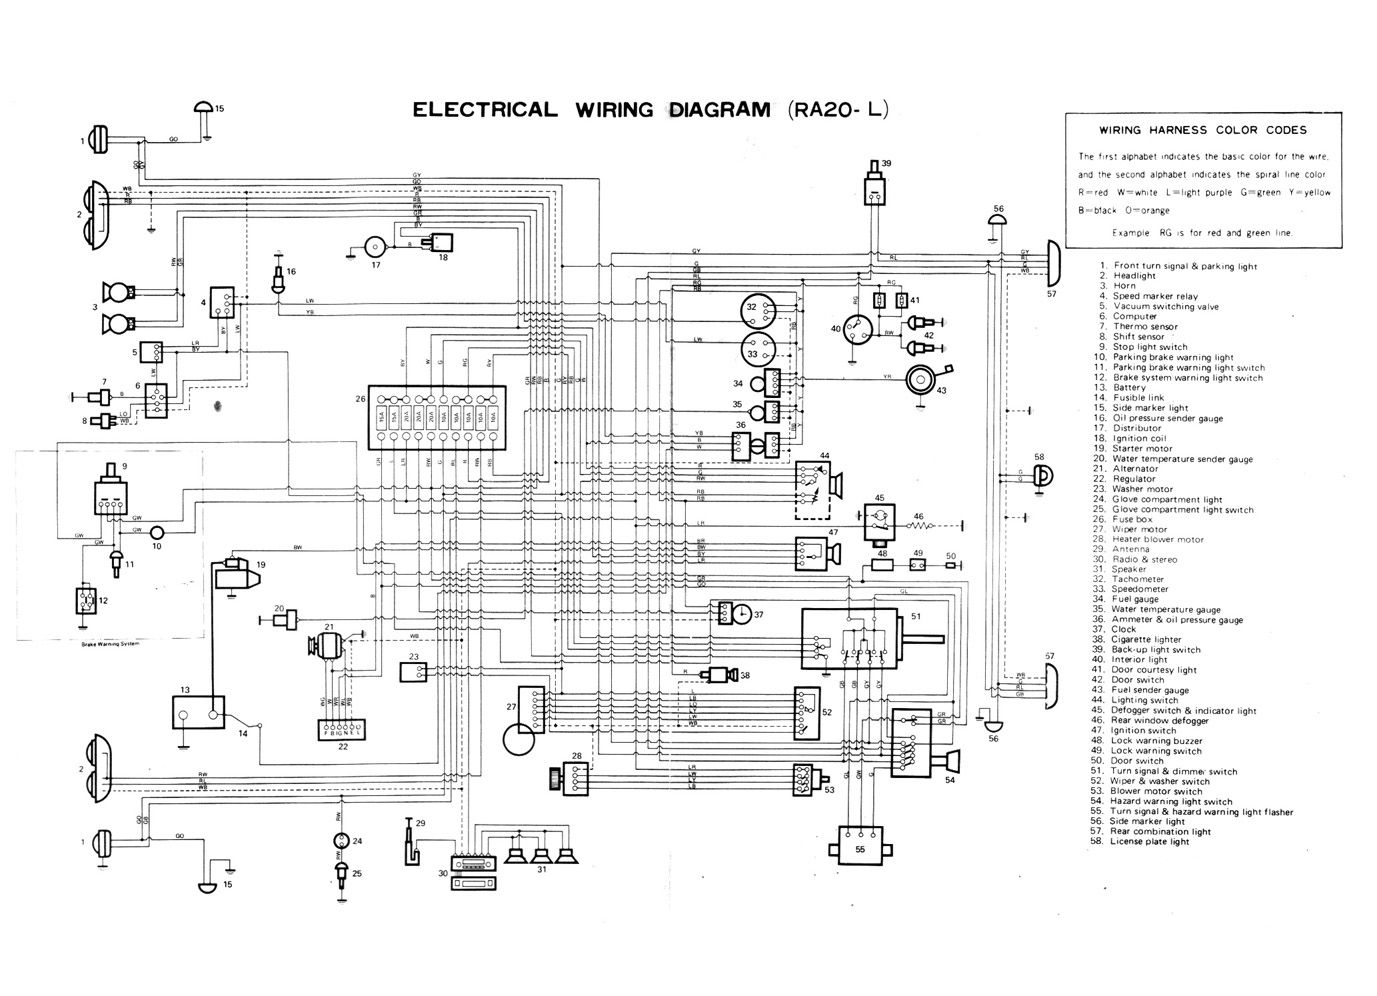 Chassis Electrical Diagram